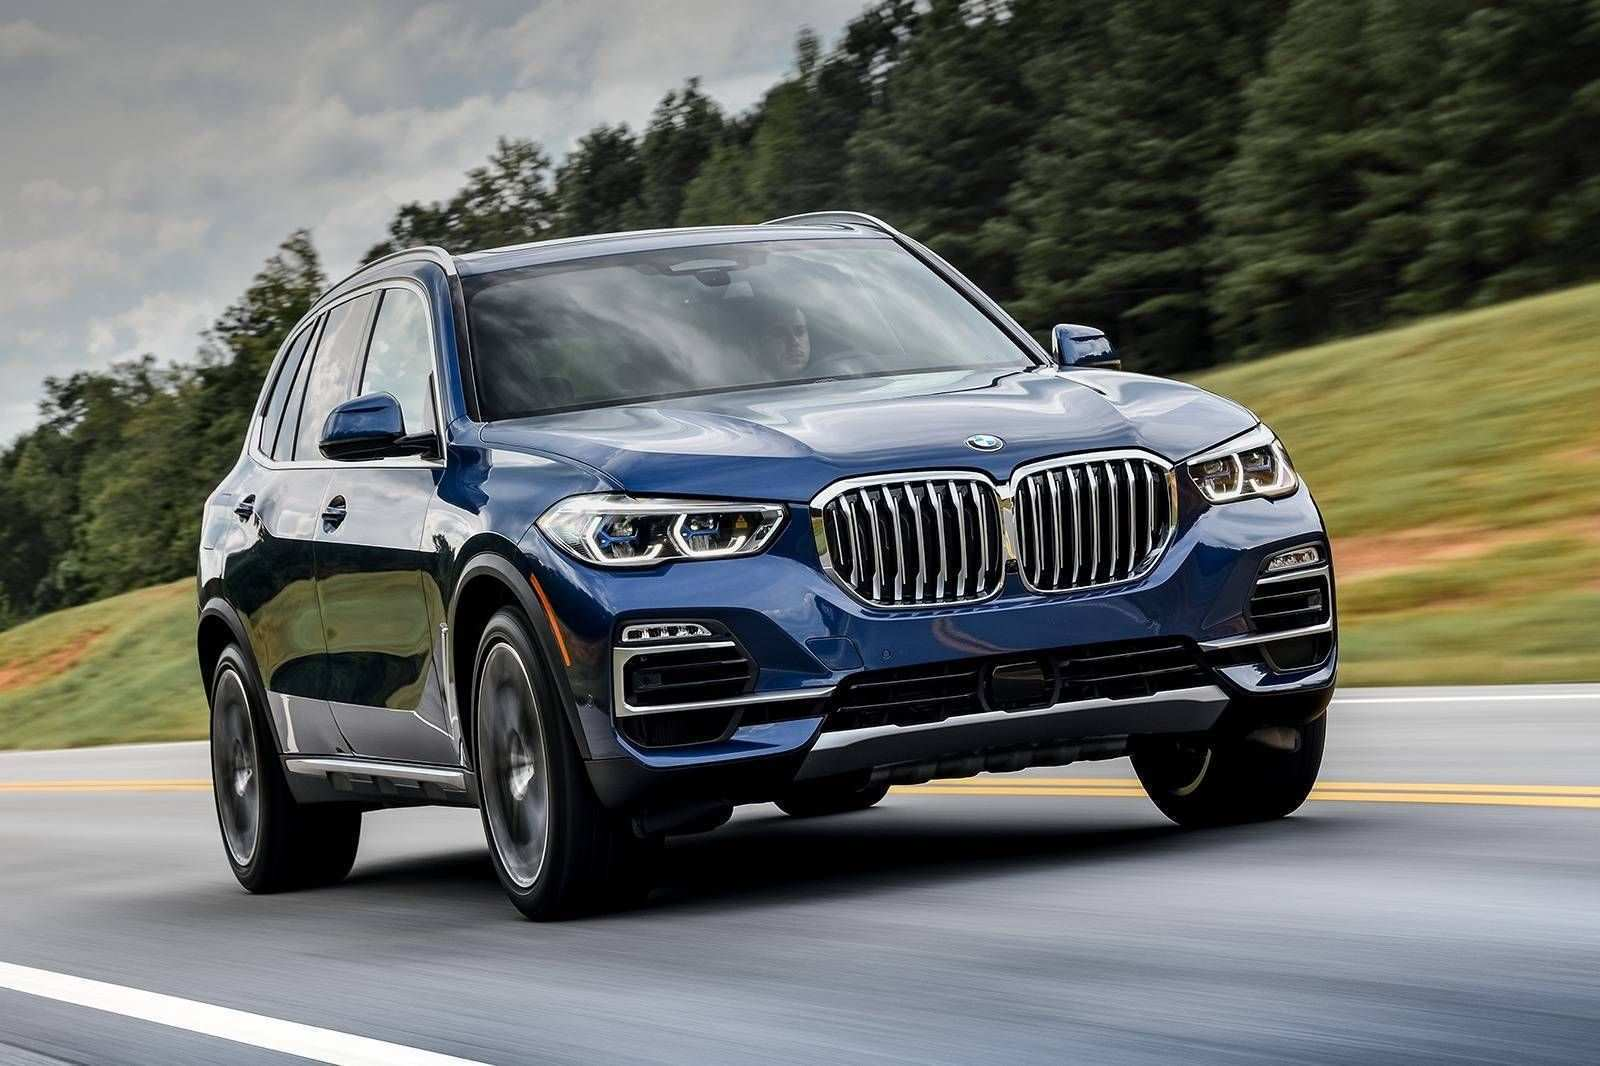 94 Best 2019 Bmw Terrain Gas Mileage Pictures